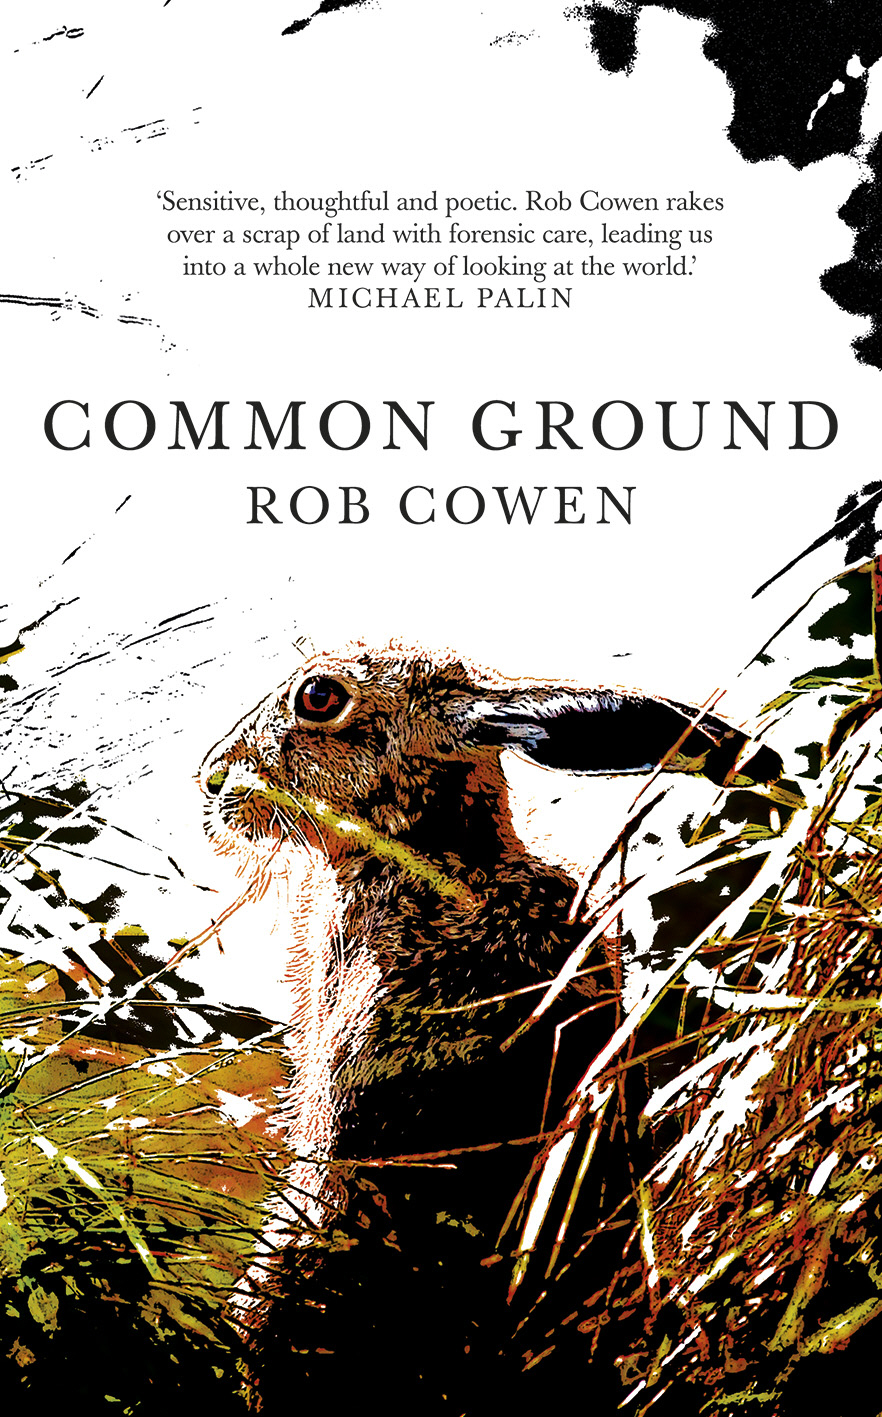 Common Ground: Rob Cowen on Edgeland Literature, Psychogeography & Nature Writing